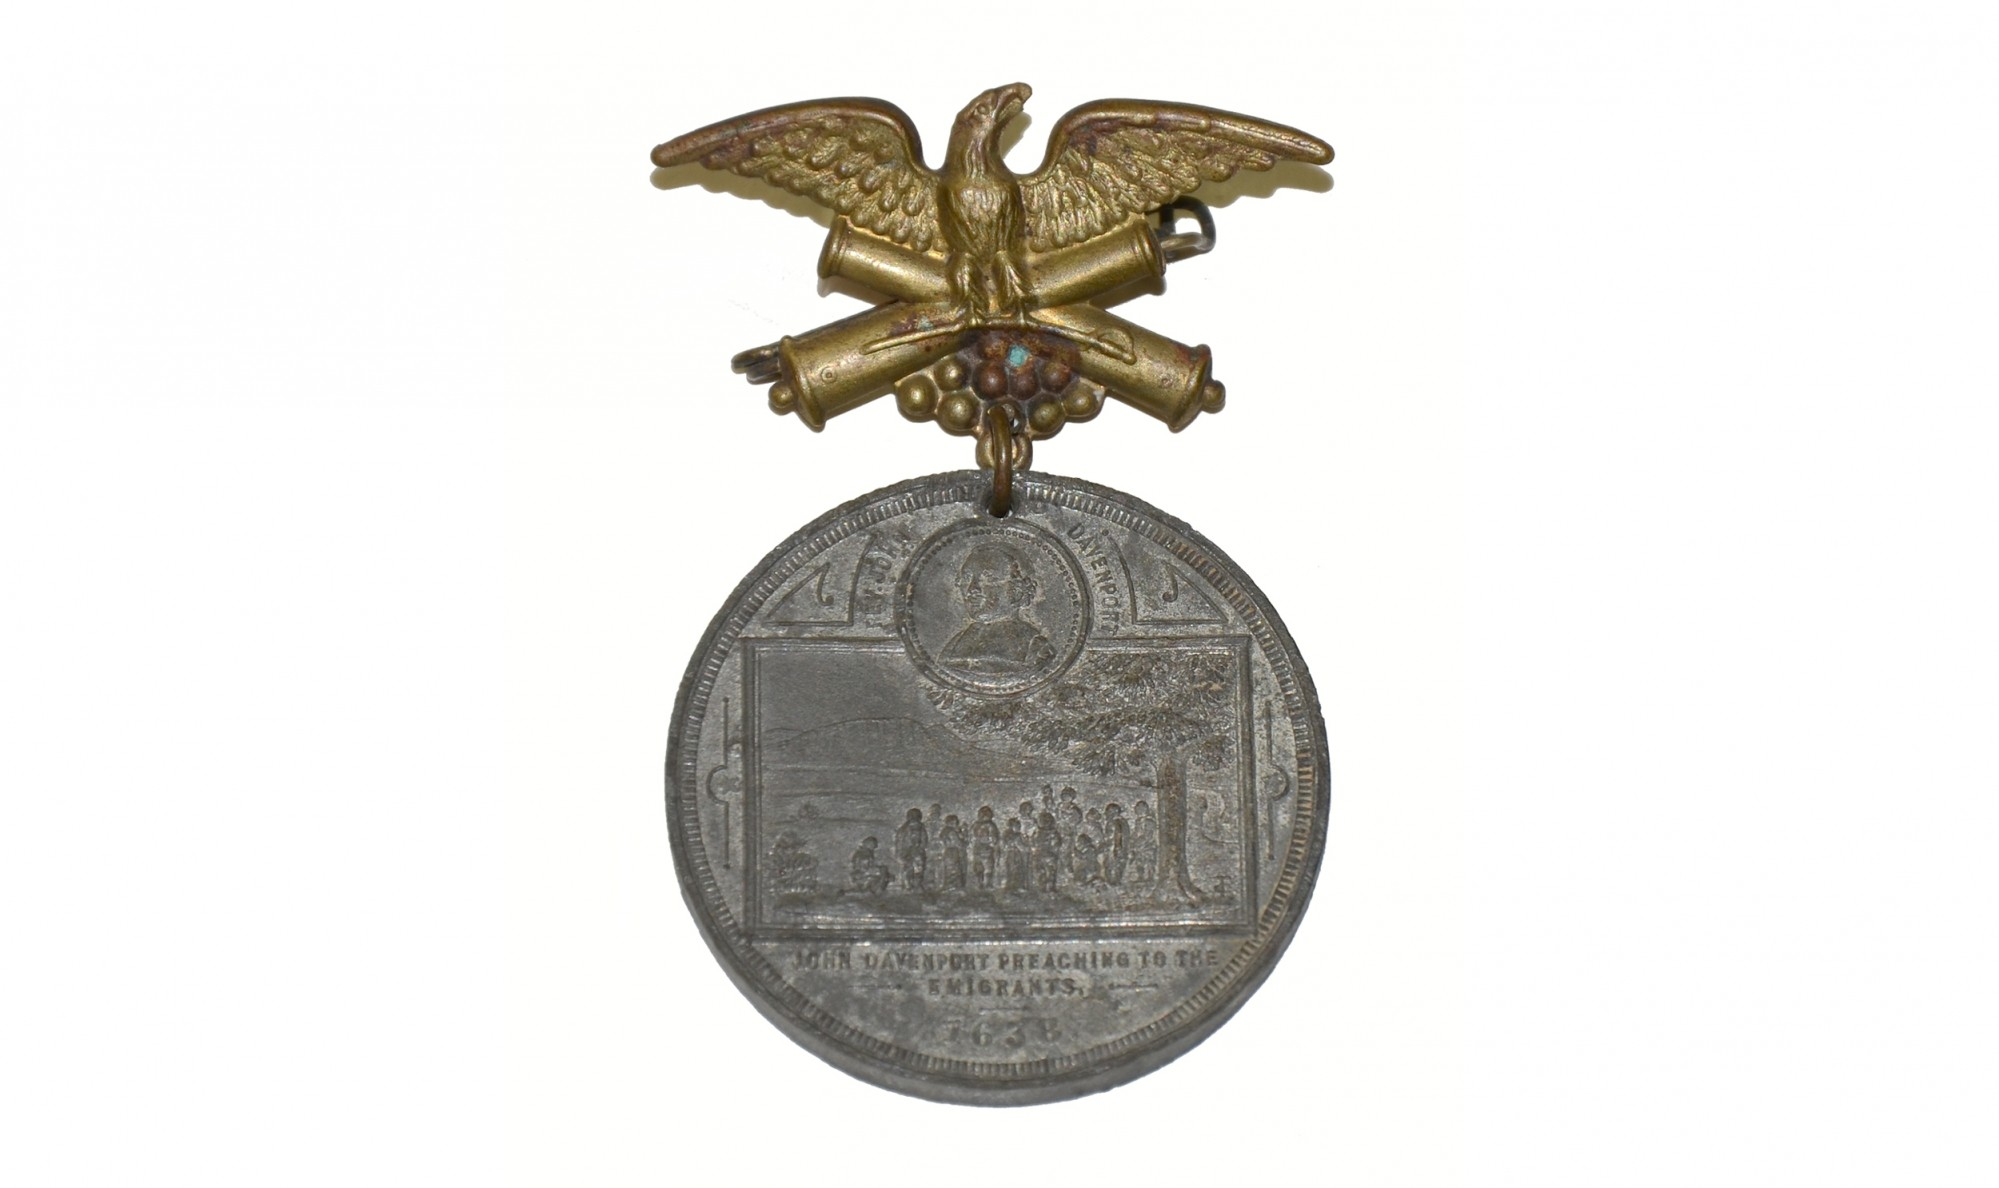 MEDAL FOR 250TH FOUNDING OF NEW HAVEN, CONNECTICUT